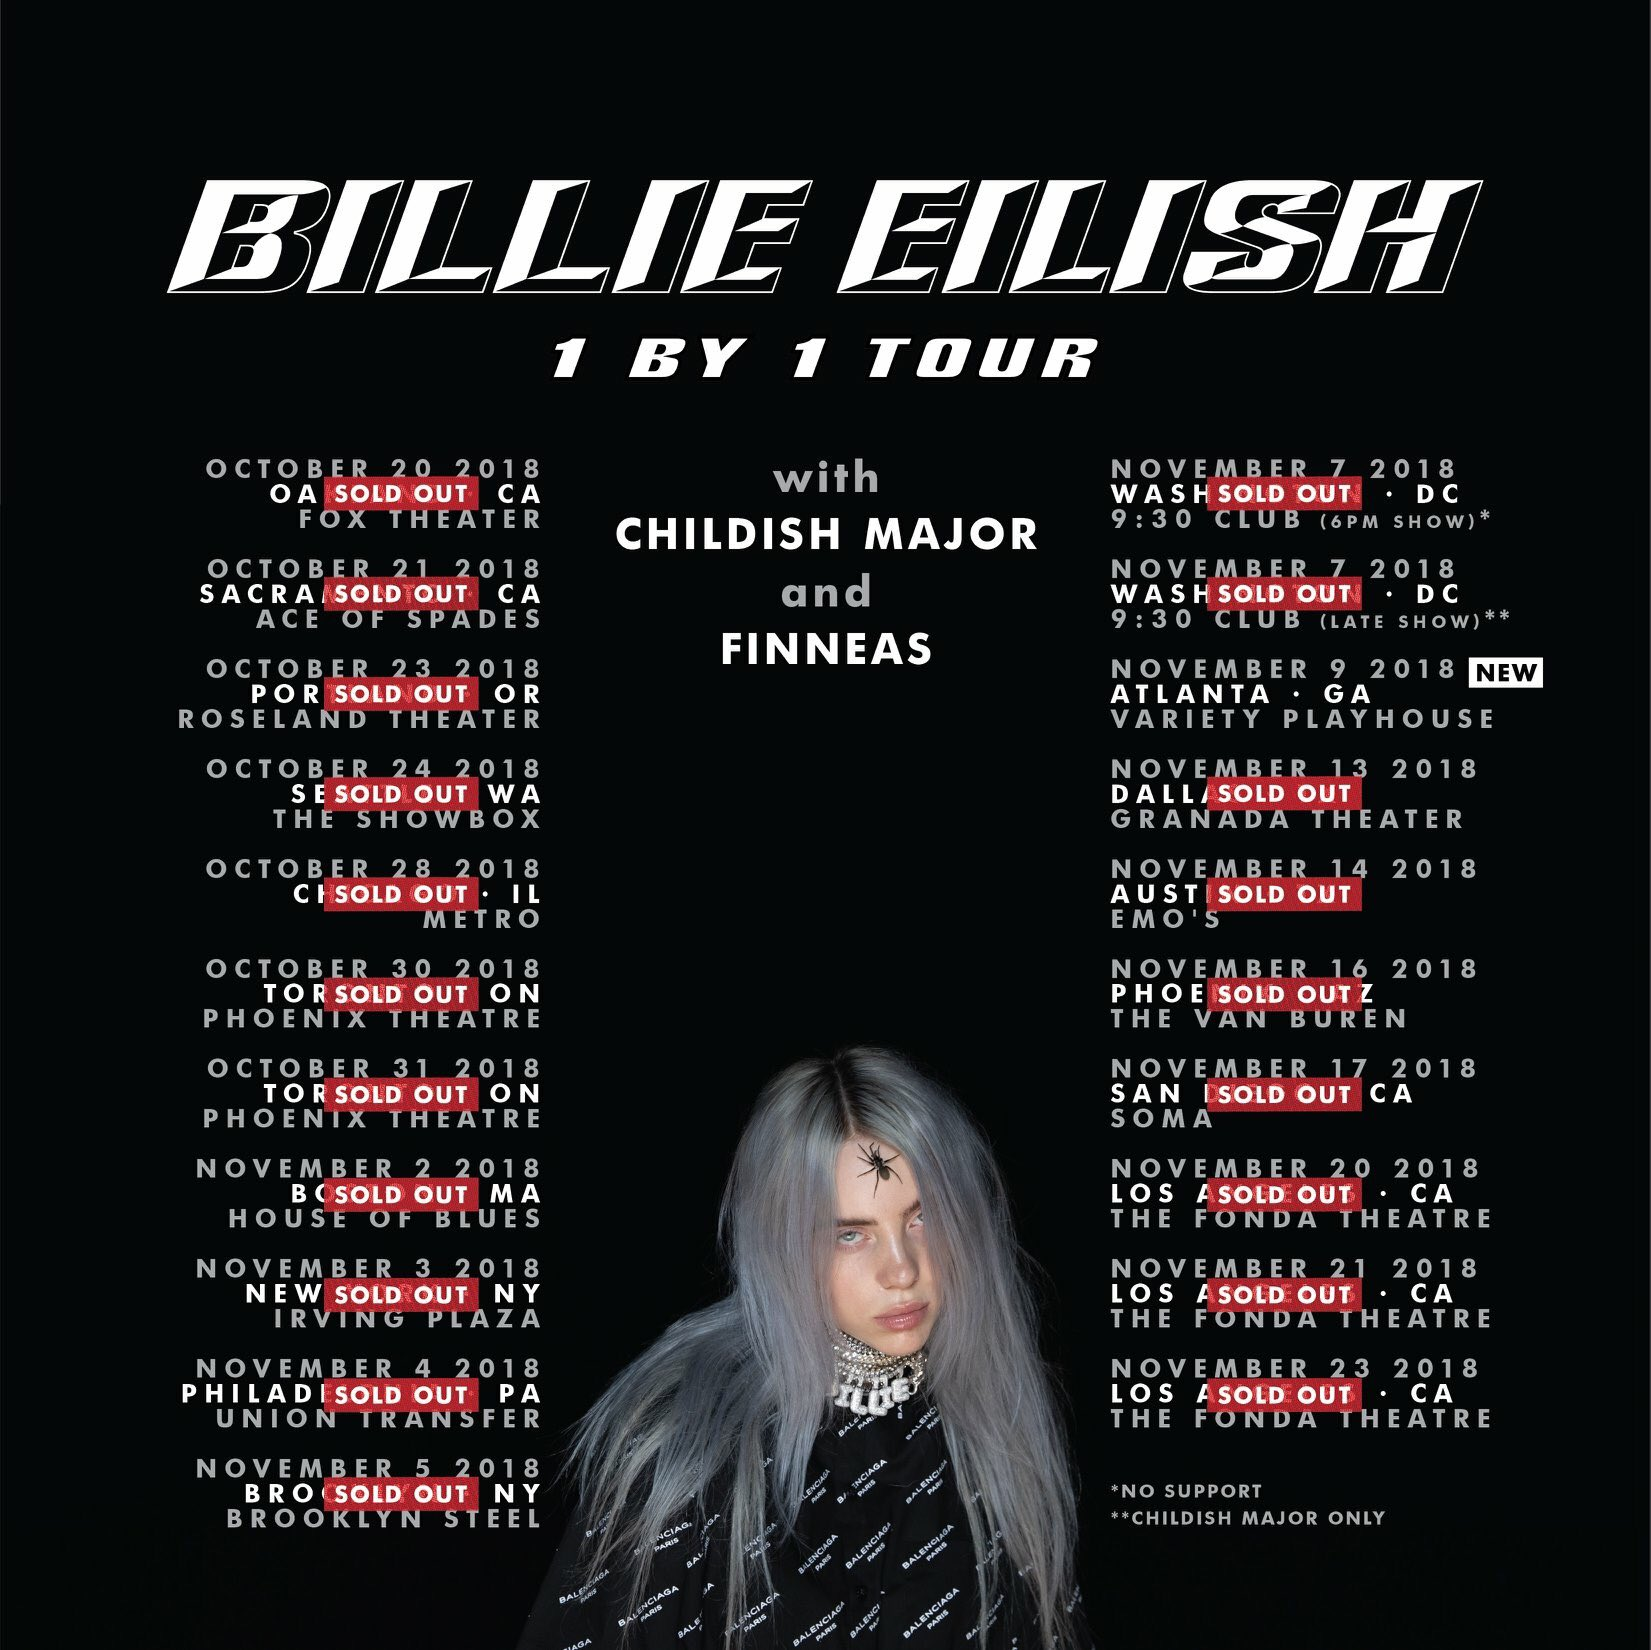 Billie Eiliah - 1 by 1 Tour Poster